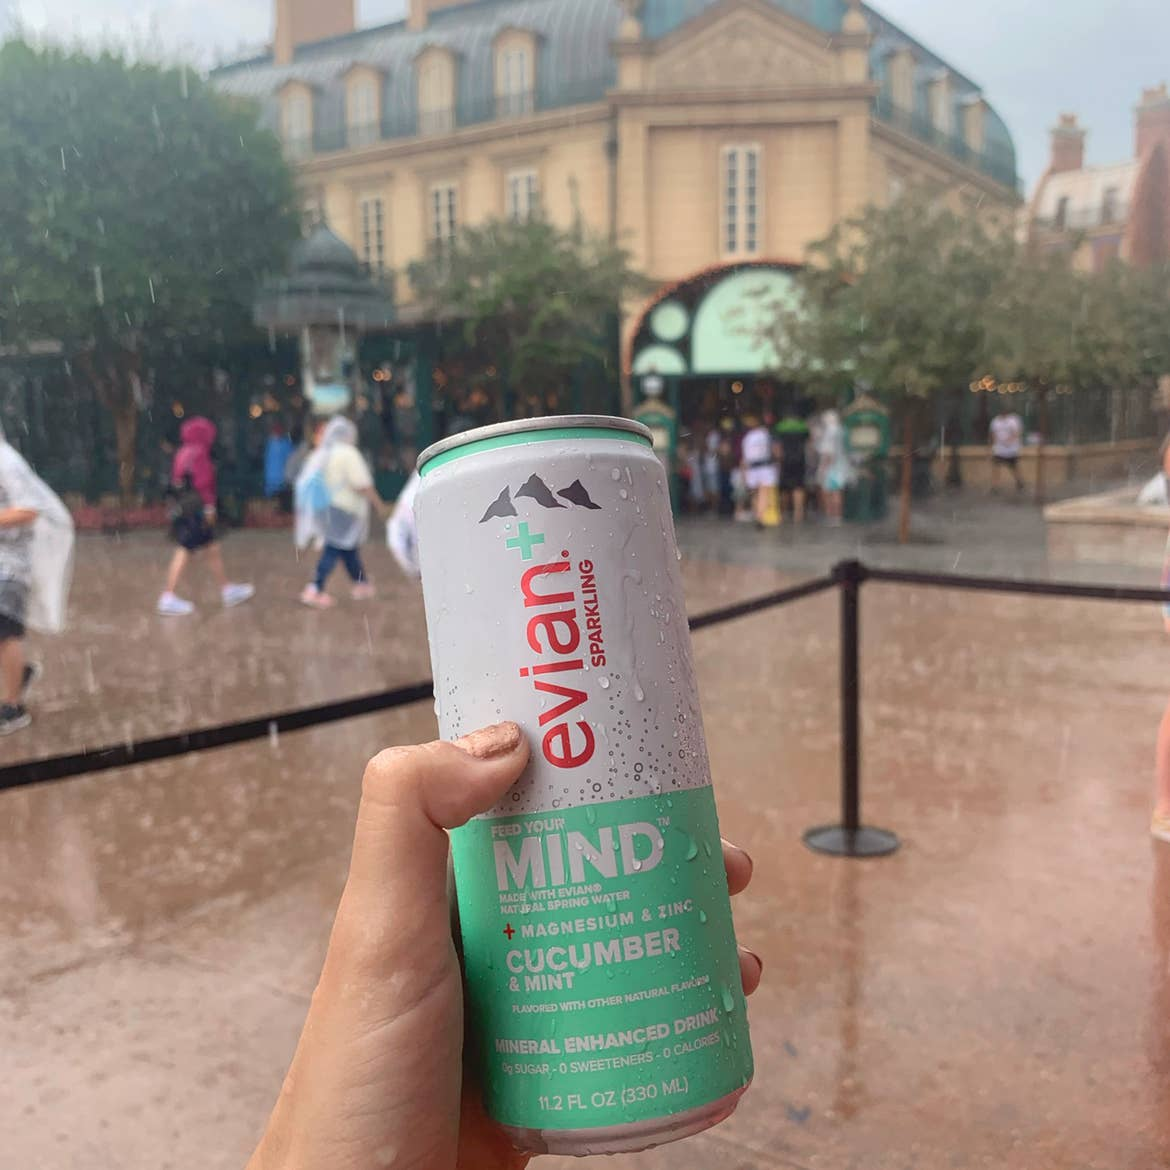 A hand holds an aluminum can of Evian near the France Pavilion at Epcot in the rain.